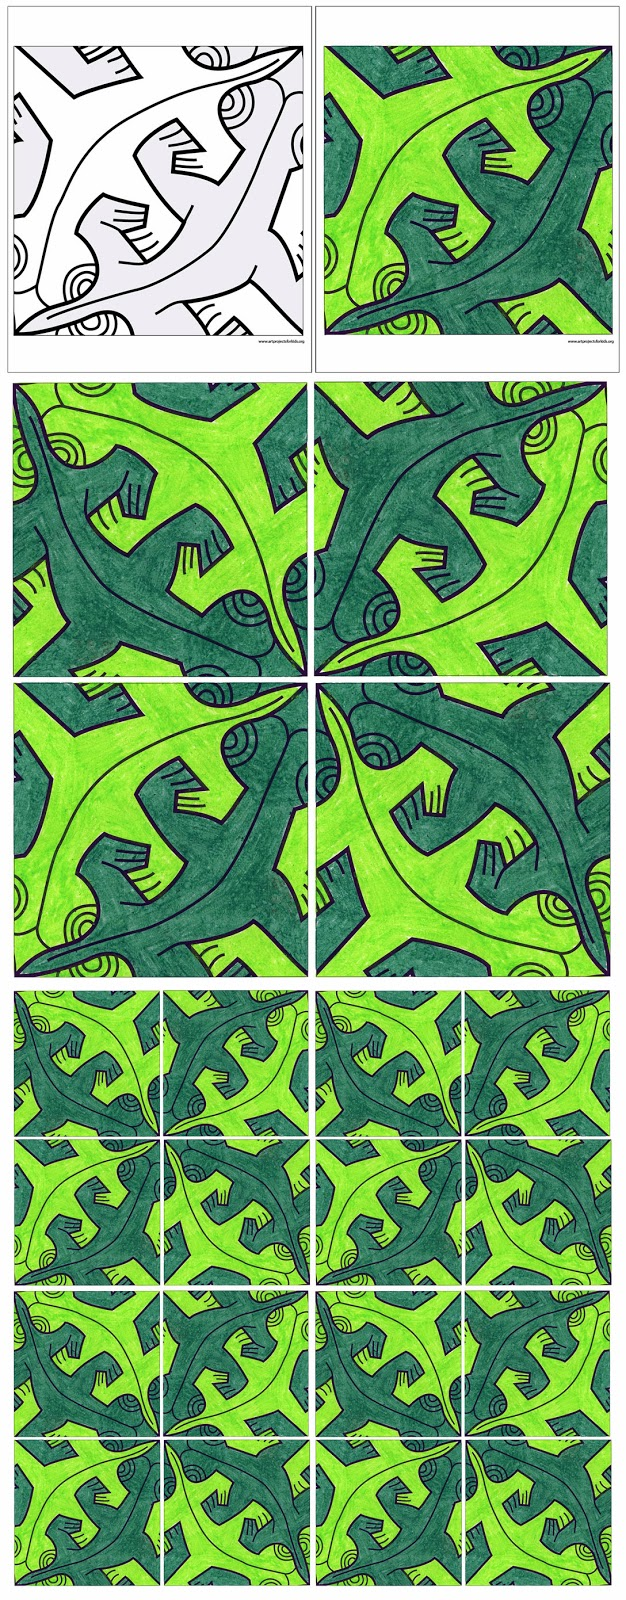 MC Eschers Art Continues To Amaze People All Over The World His Many Nature Themed Tessellations Are Both Lovely And Brilliant